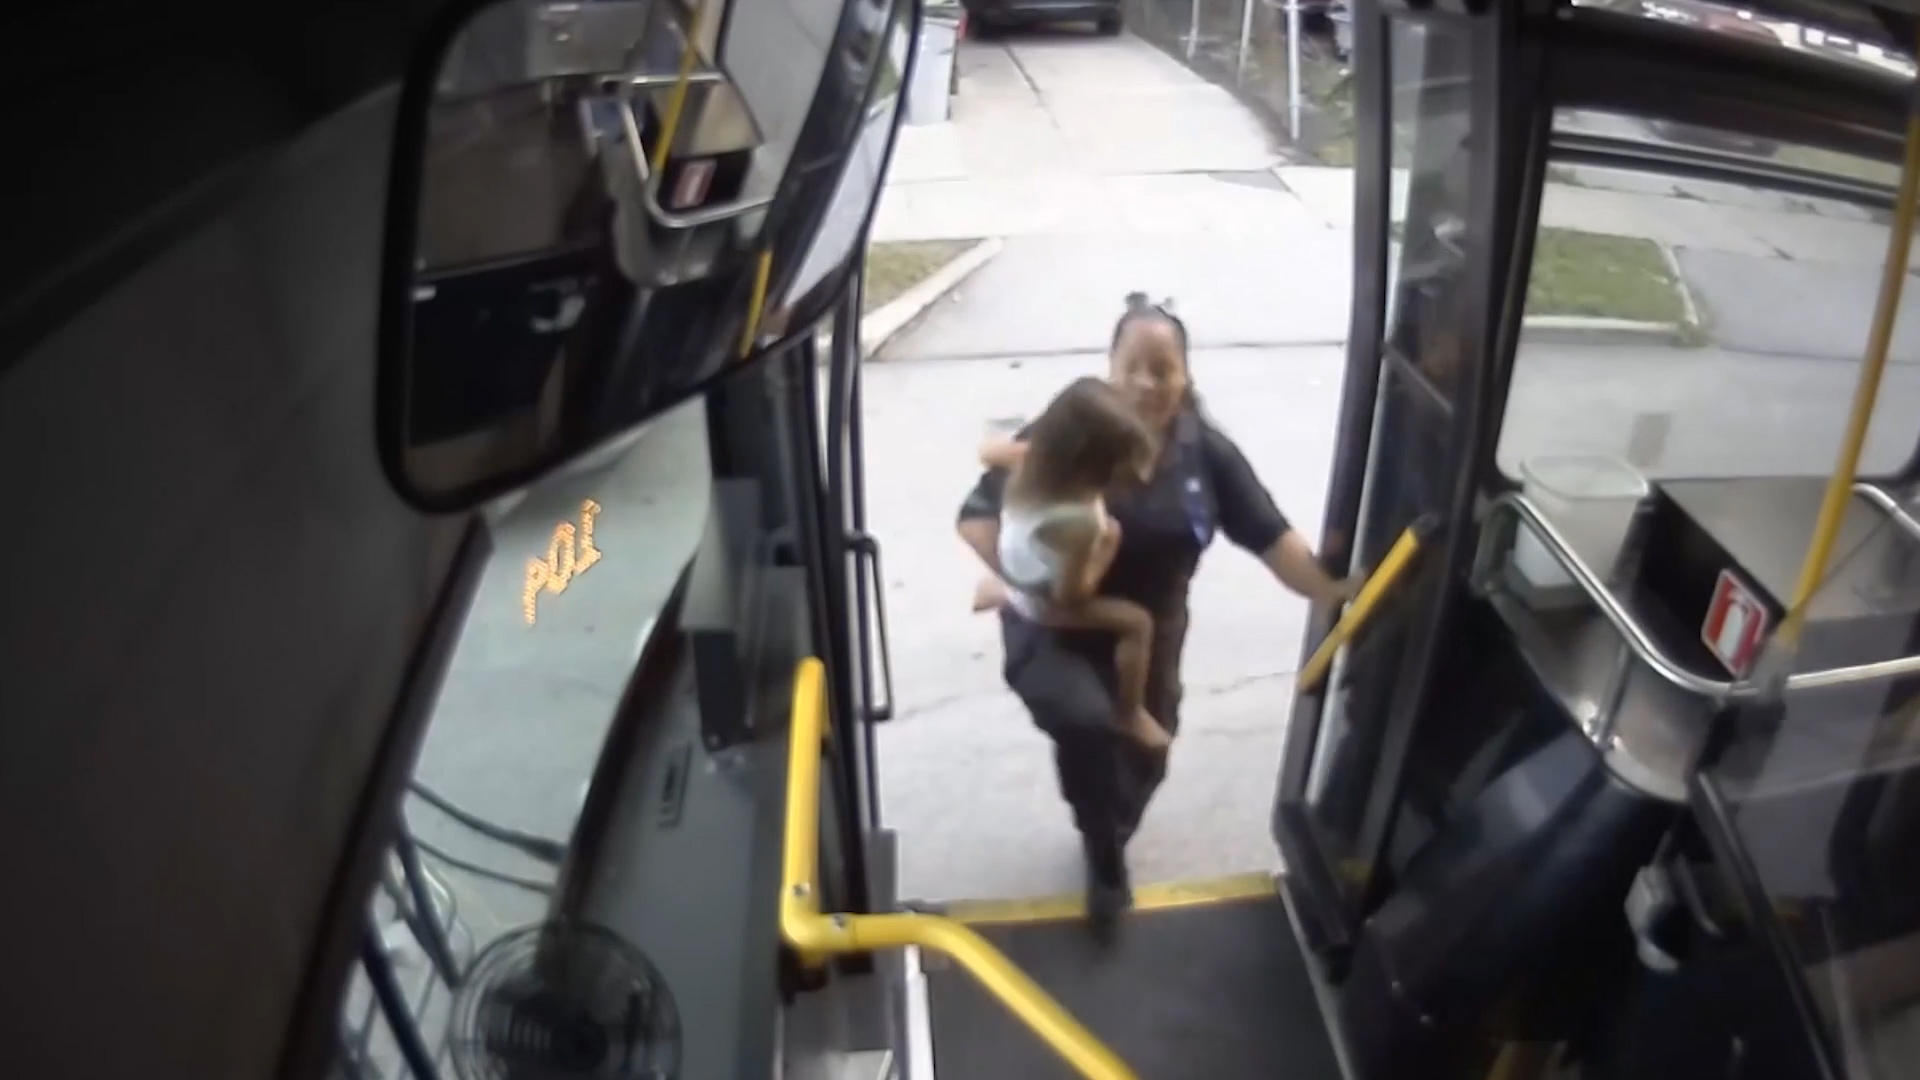 Bus driver rescues toddler wandering on U.S.  overpass in freezing conditions